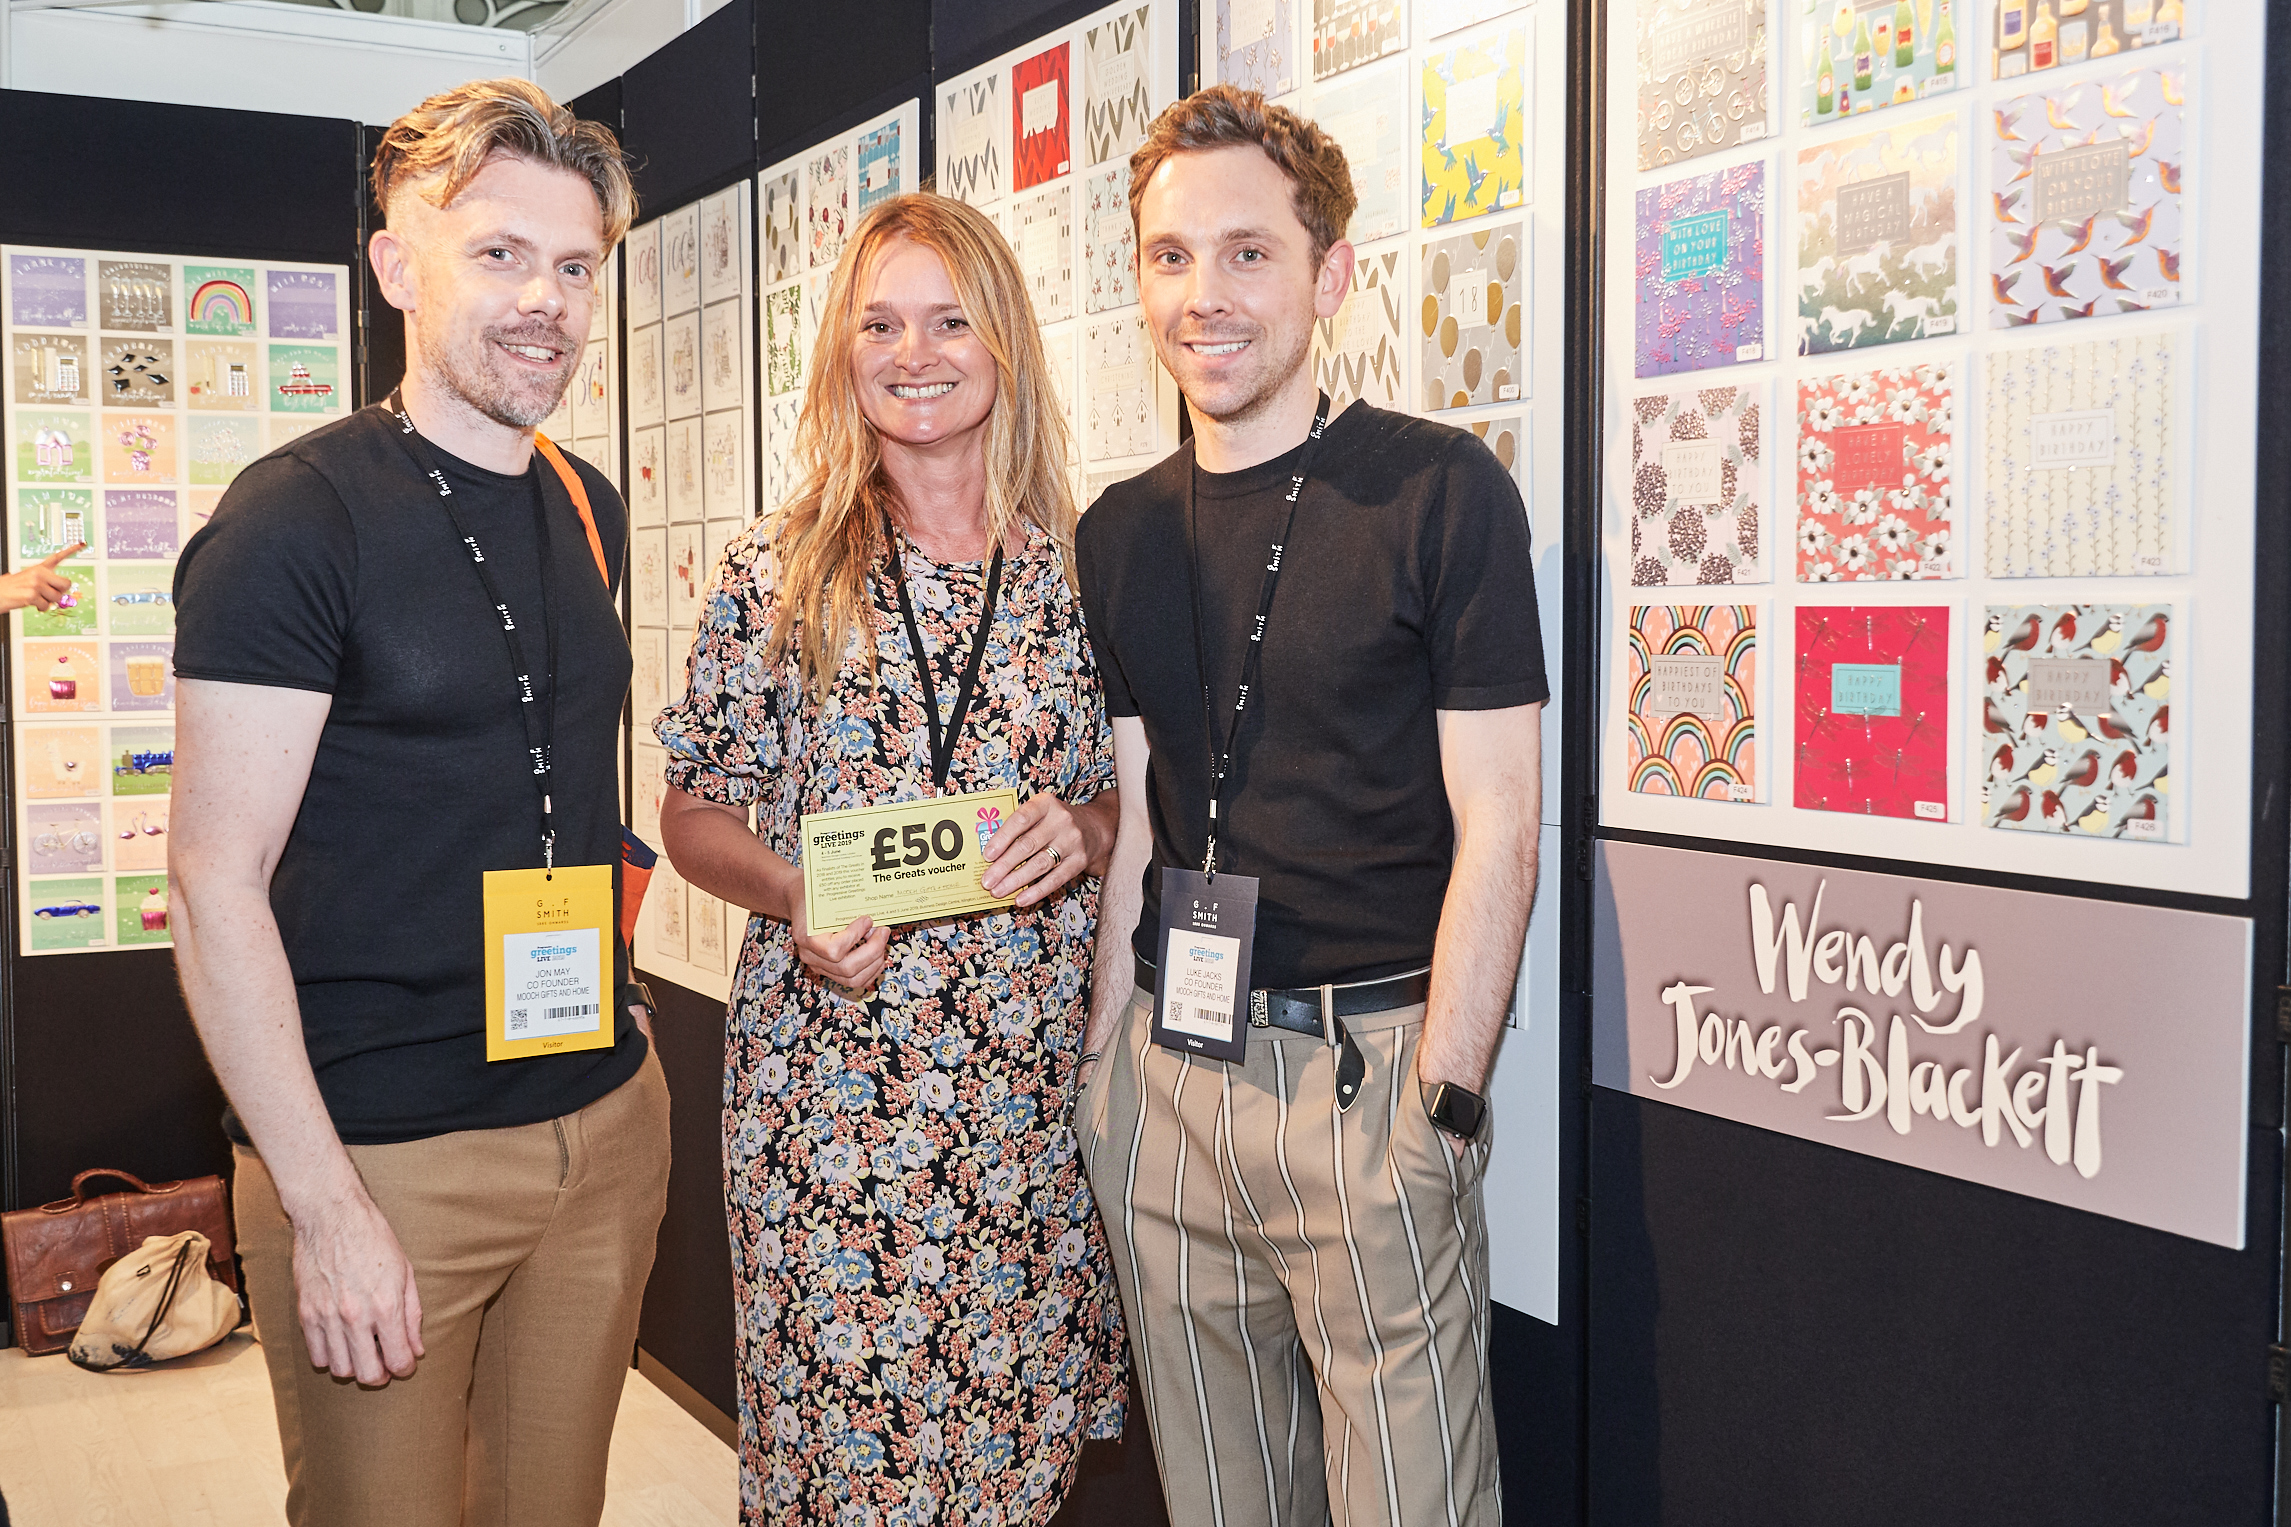 Above: Wendy Jones-Blackett was happy that the Luke Jacks and Jon May, founders of Mooch, Stourport on Severn and Bewdley spent their Greats voucher with the company at the show.